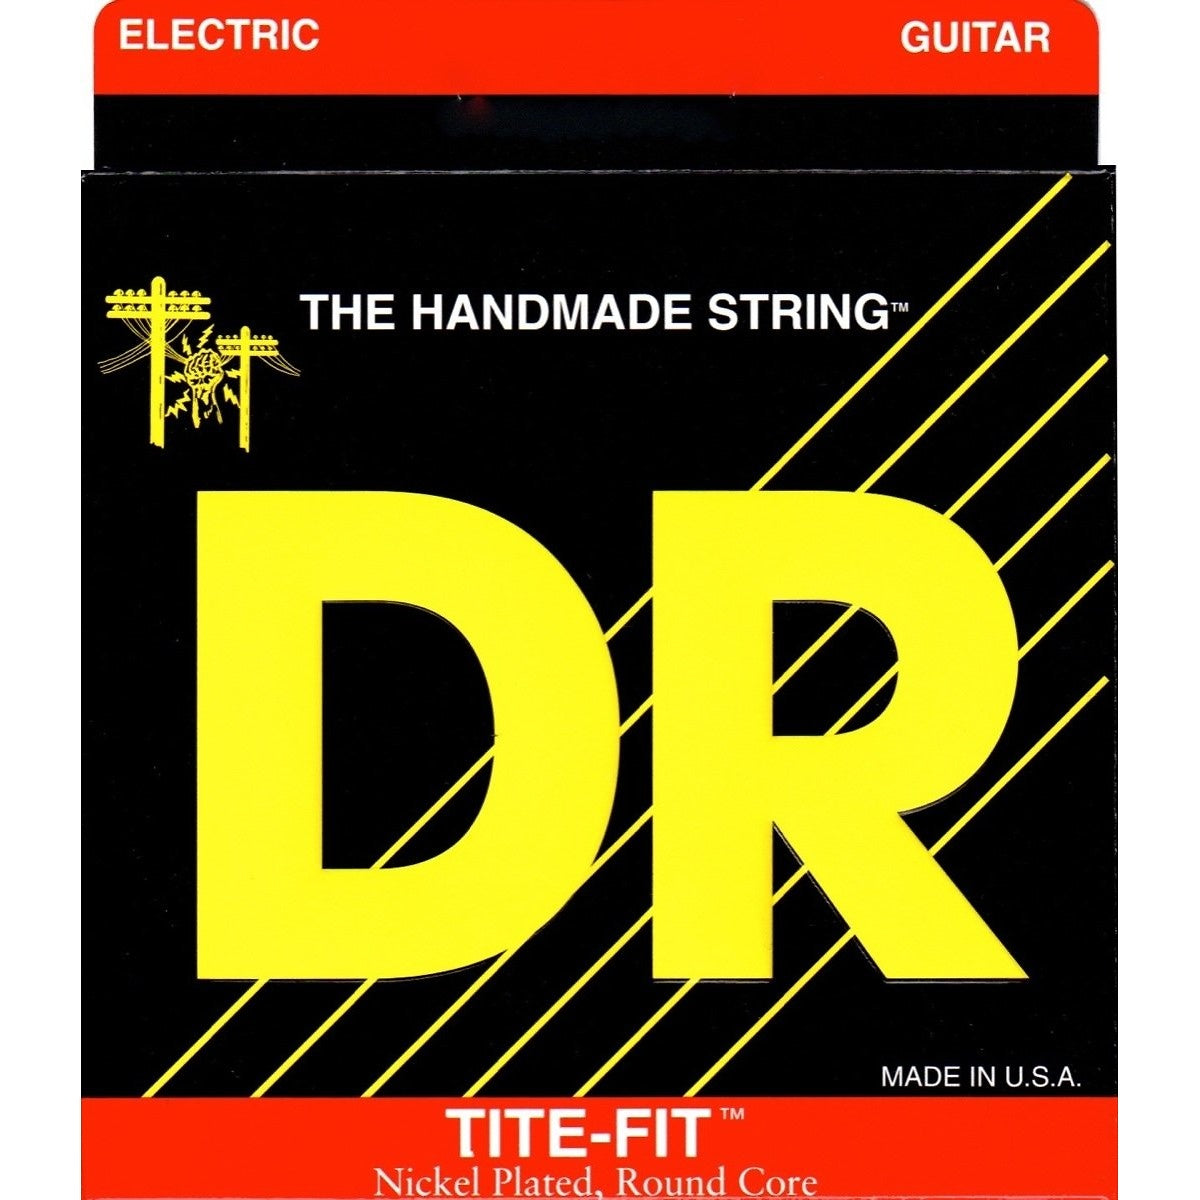 DR Strings Tite-Fit Electric Guitar Strings, MH-10, Medium-Heavy, 10-50